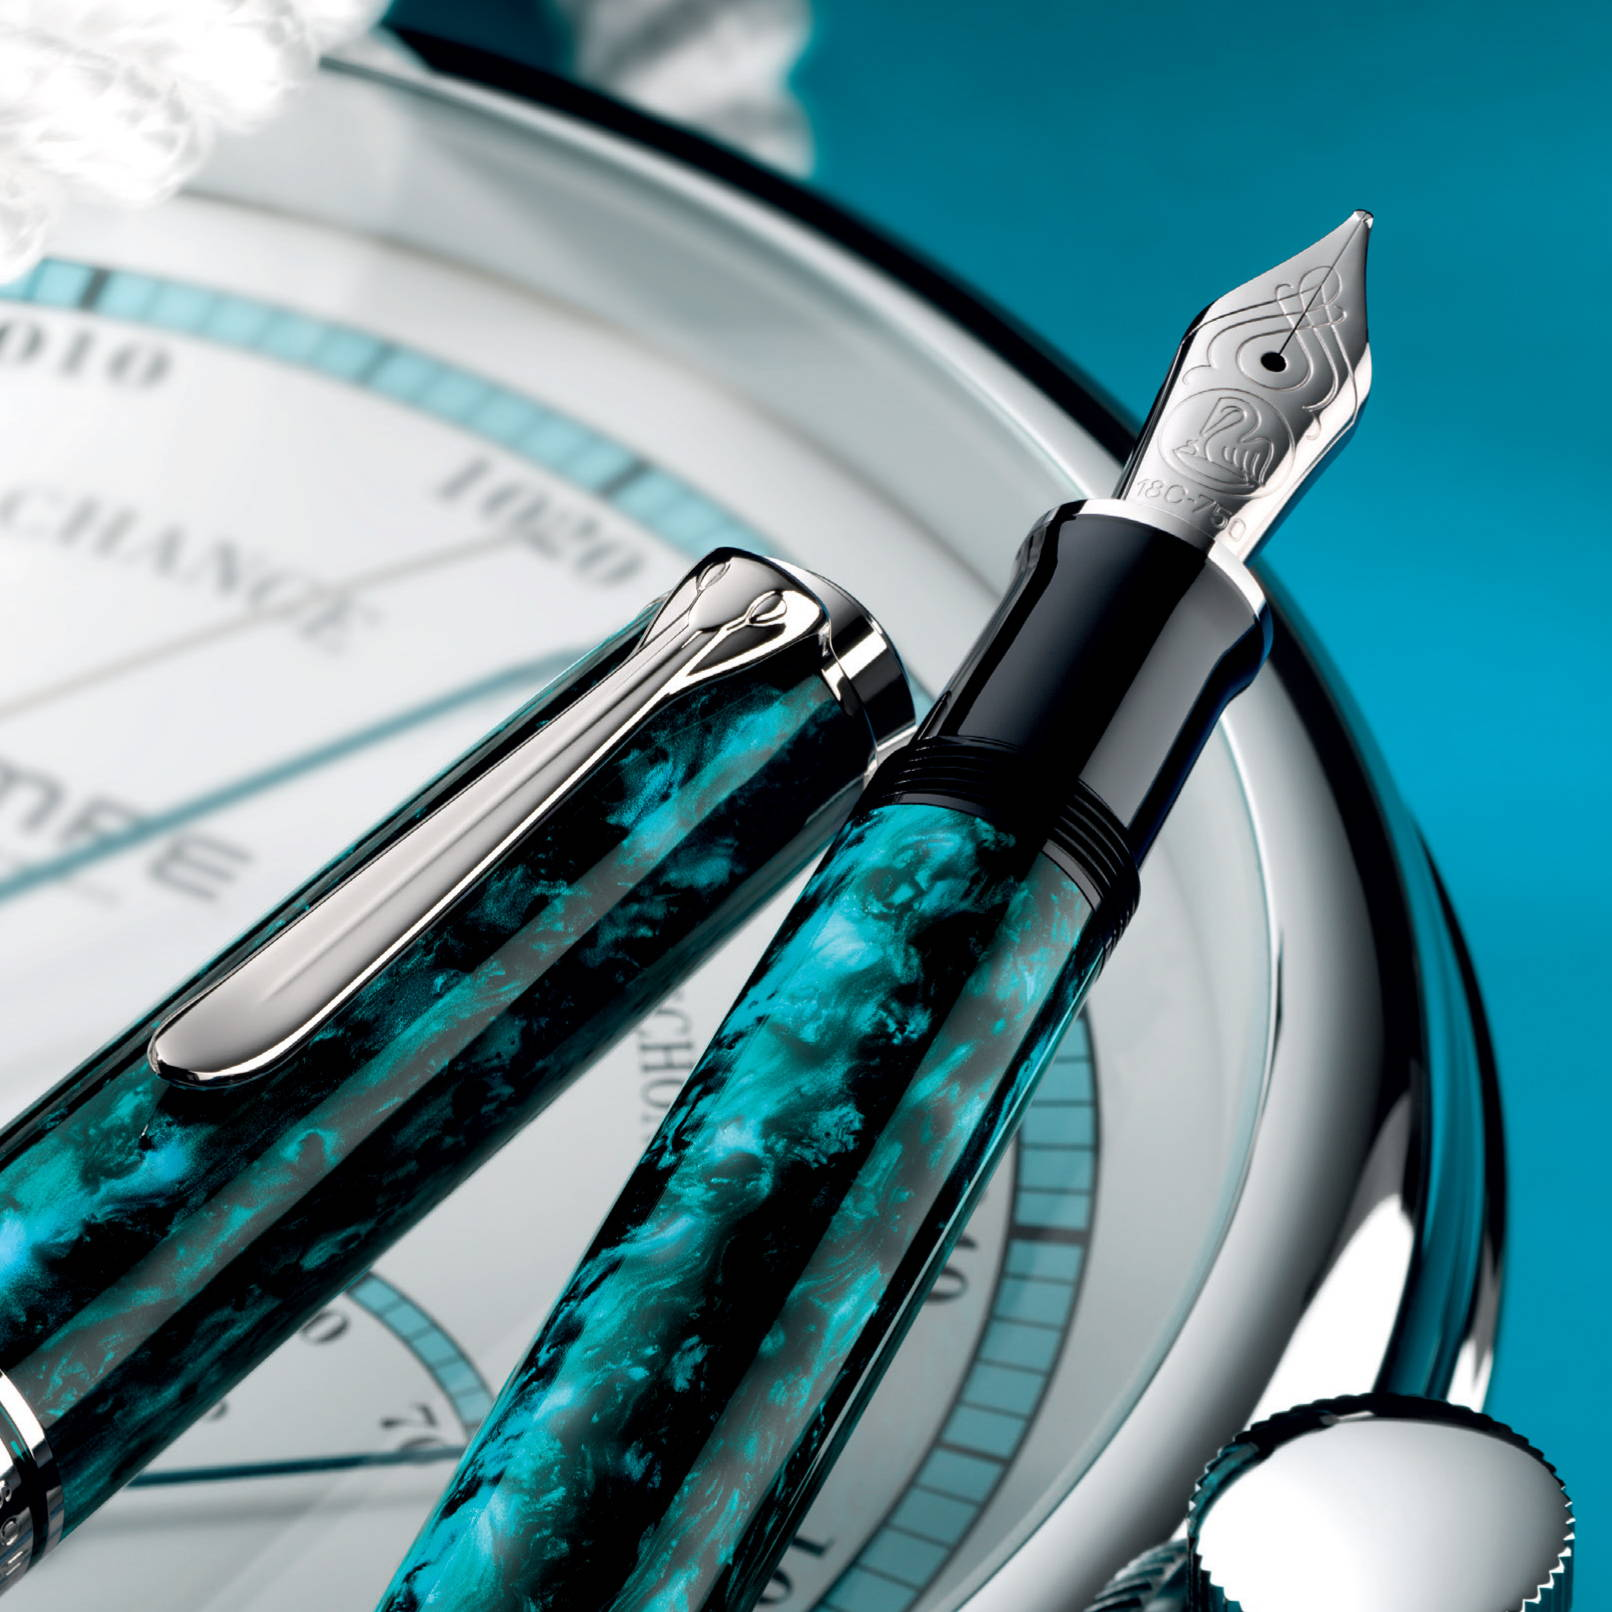 Free Pelikan Edelstein Ink when you pre-order the Souveran 805 Ocean Swirl